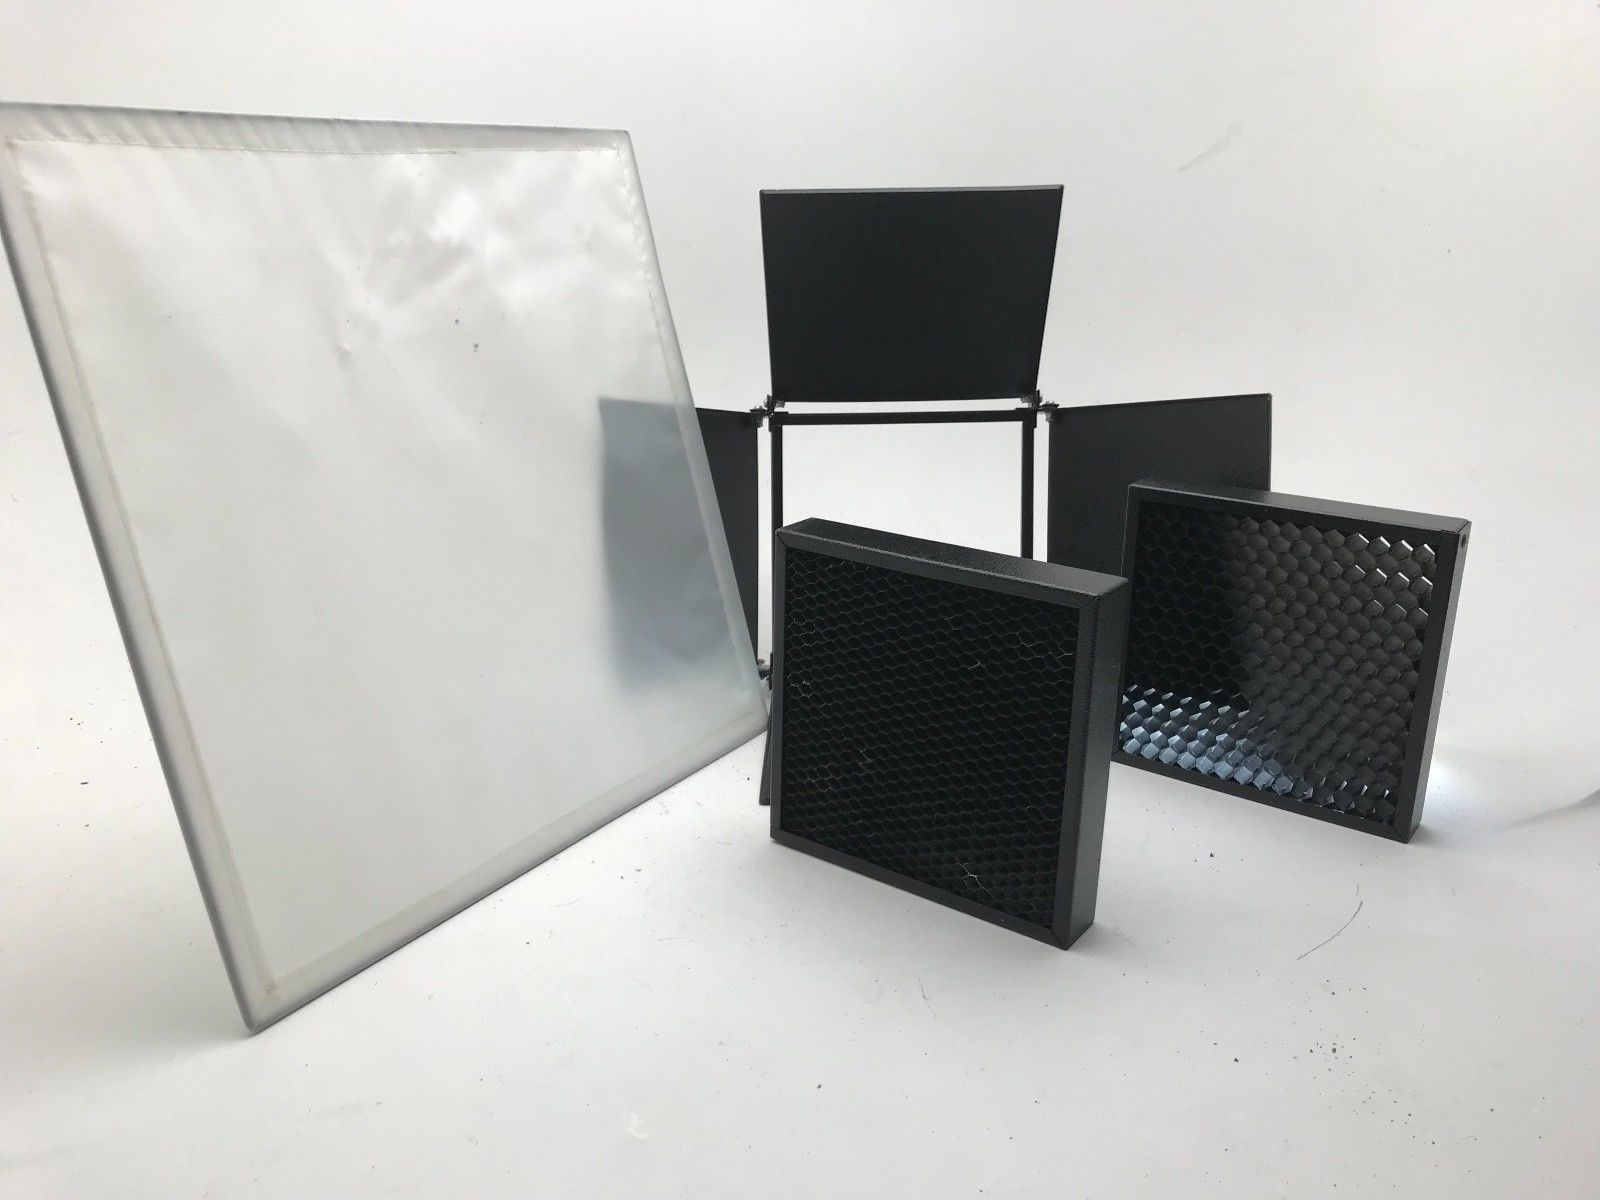 Bowens Bolite Accessory Kit With 4 Leaf Barn Doors 2 Honeycomb Grids